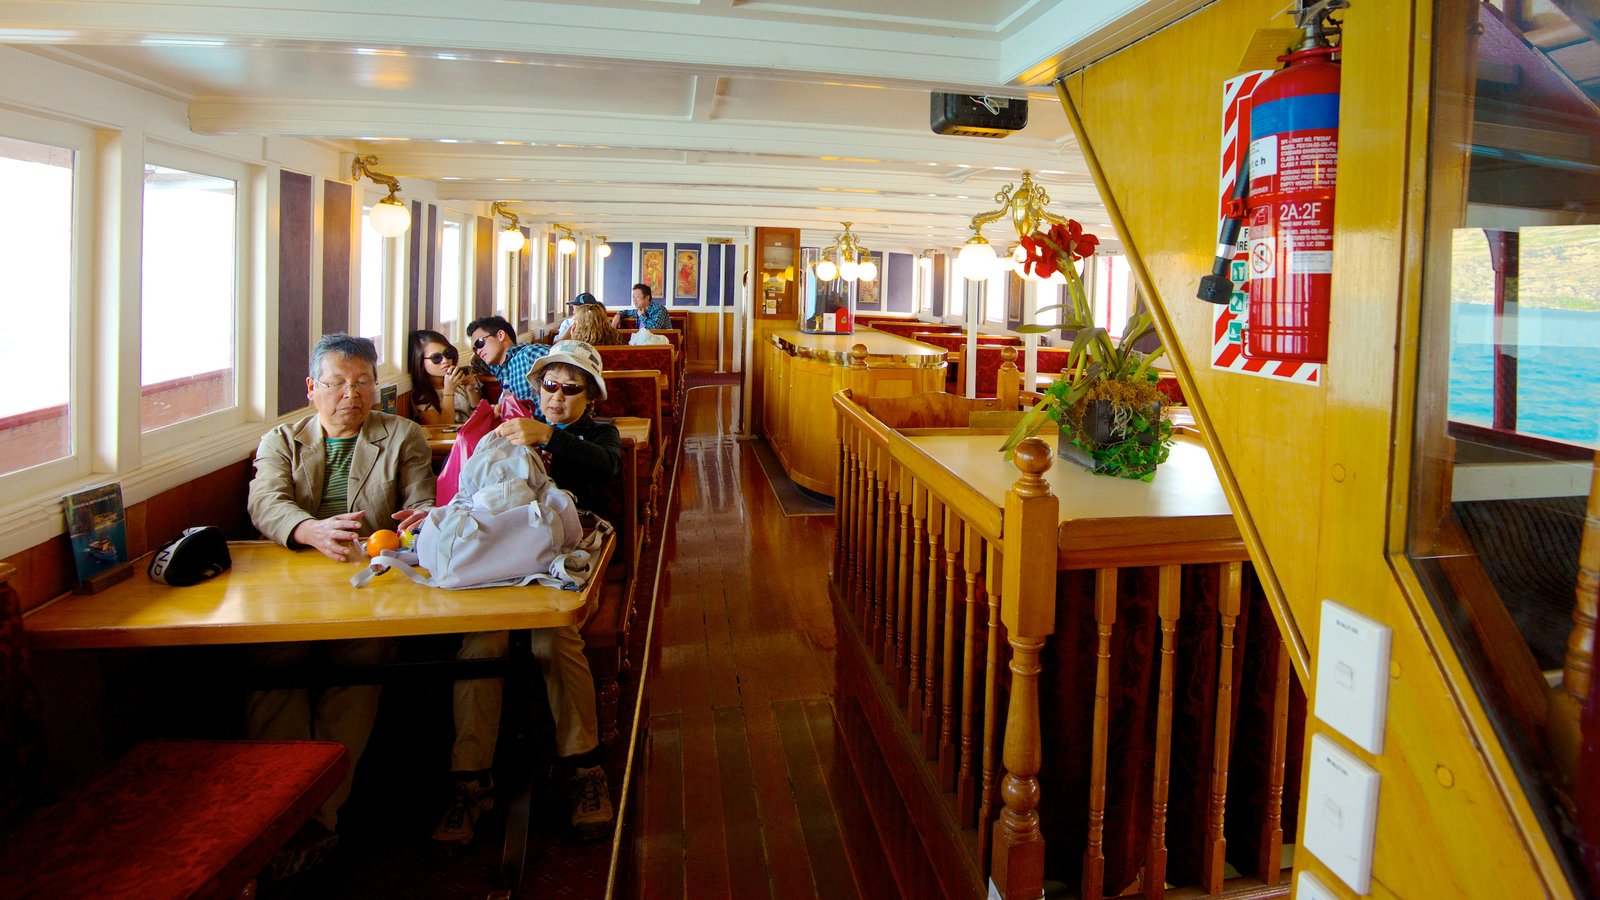 TSS Earnslaw Steamship which includes interior views as well as a family